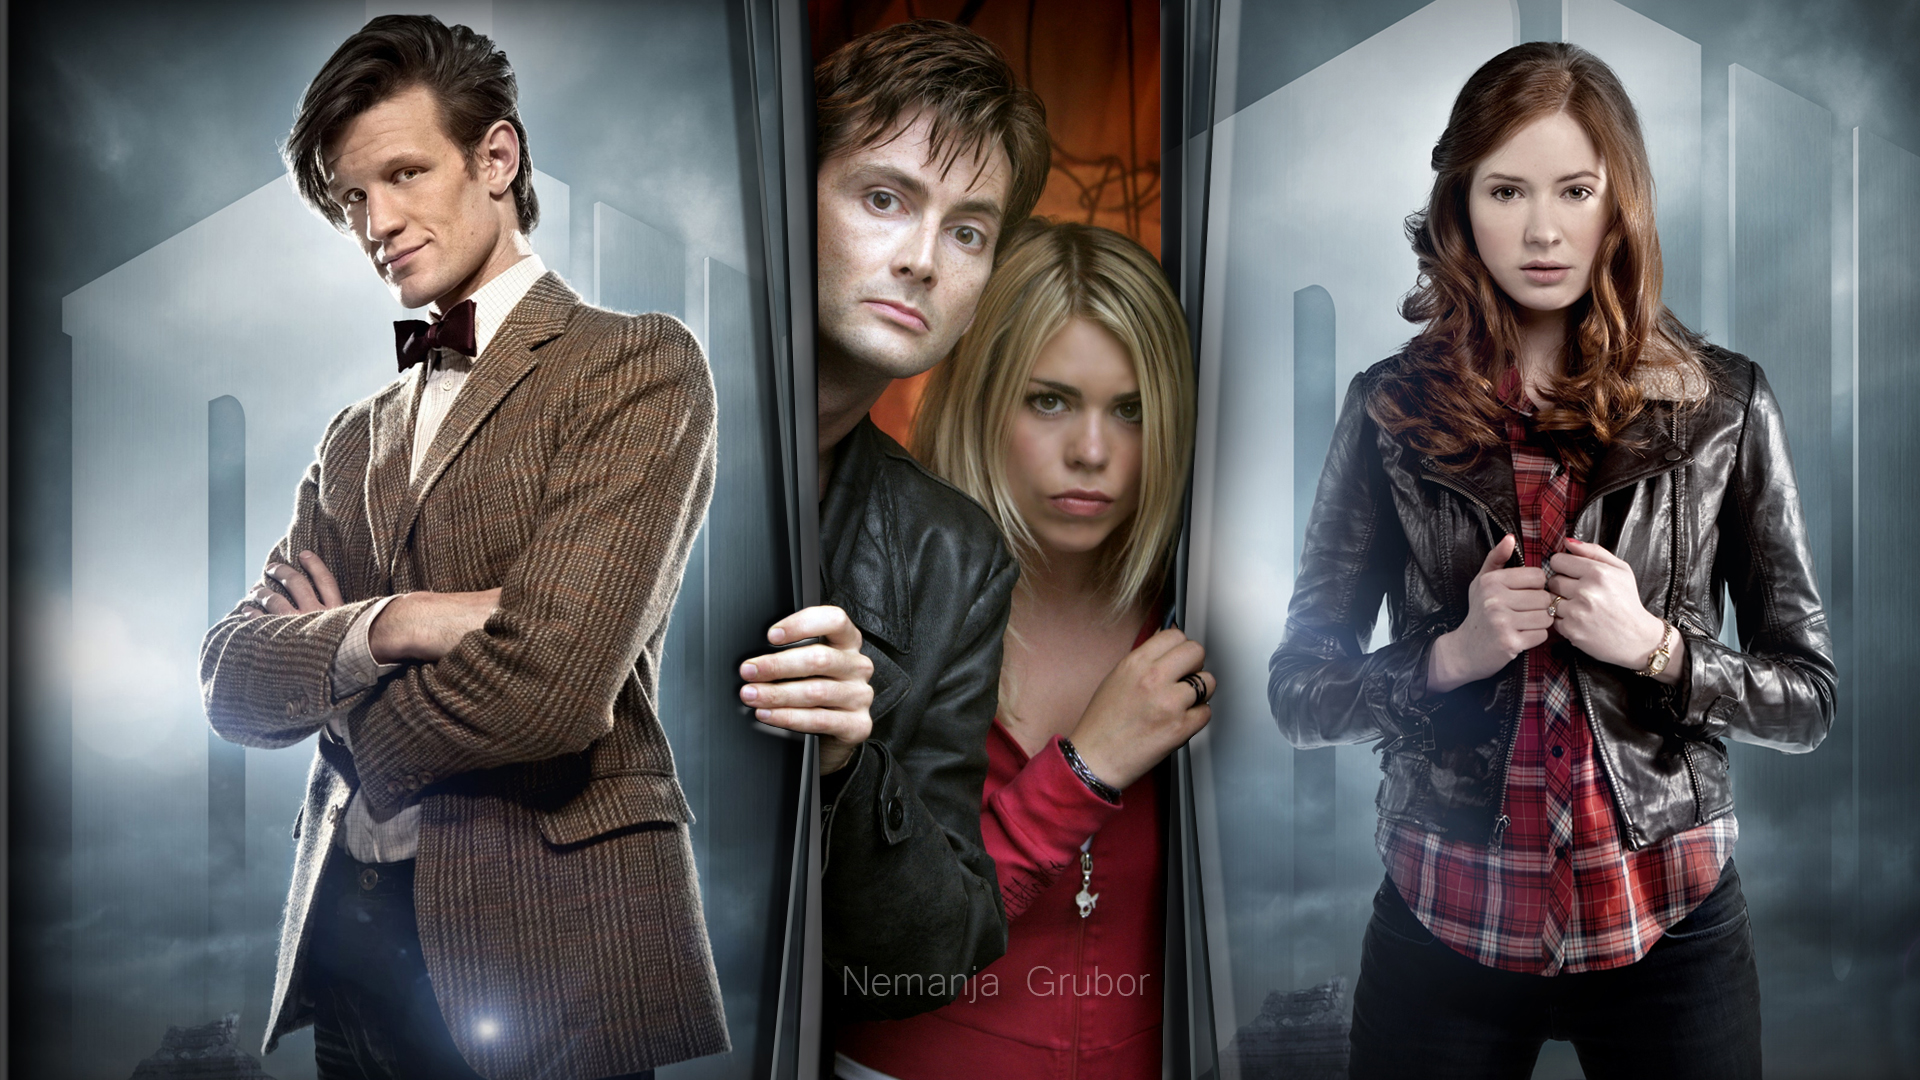 free doctor who episodes Hd Wallpapers 1920x1080